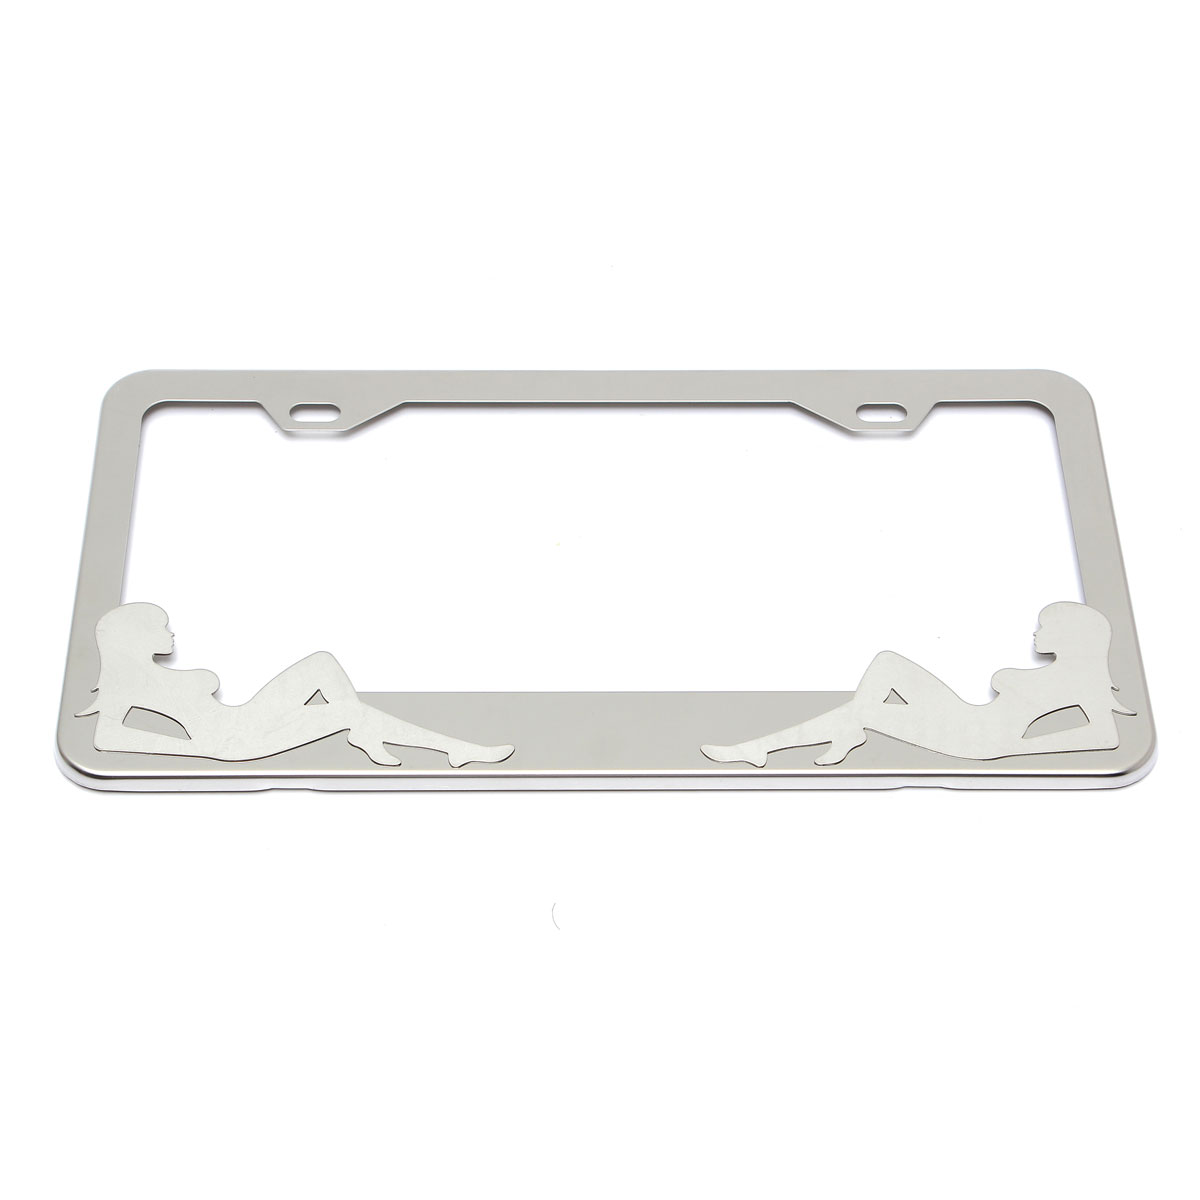 New Stainless Steel Polished License Plate Frames Plain Blank Metal Tag Cover Caps For car(China (Mainland))